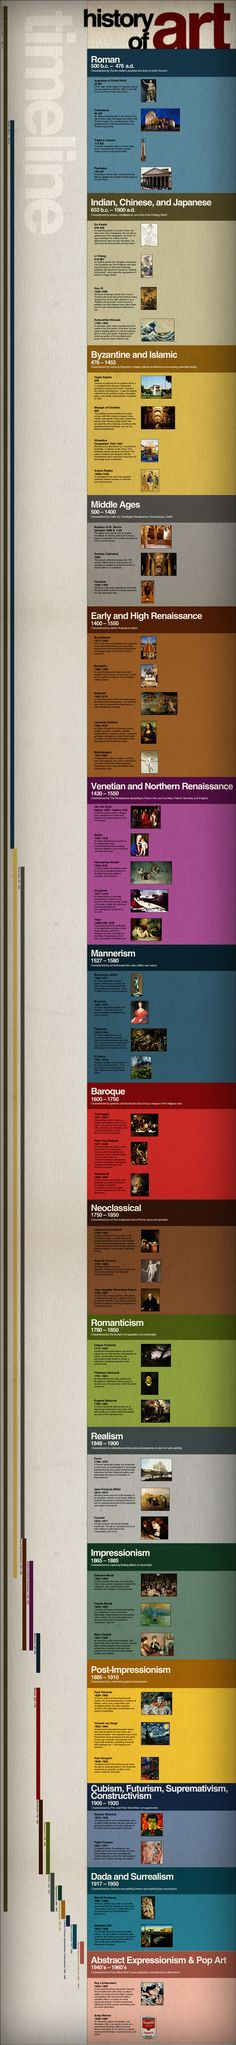 Get Students to Create Their own Infographic Timeline That Demonstrates Their understanding Of Art History yr 10-11